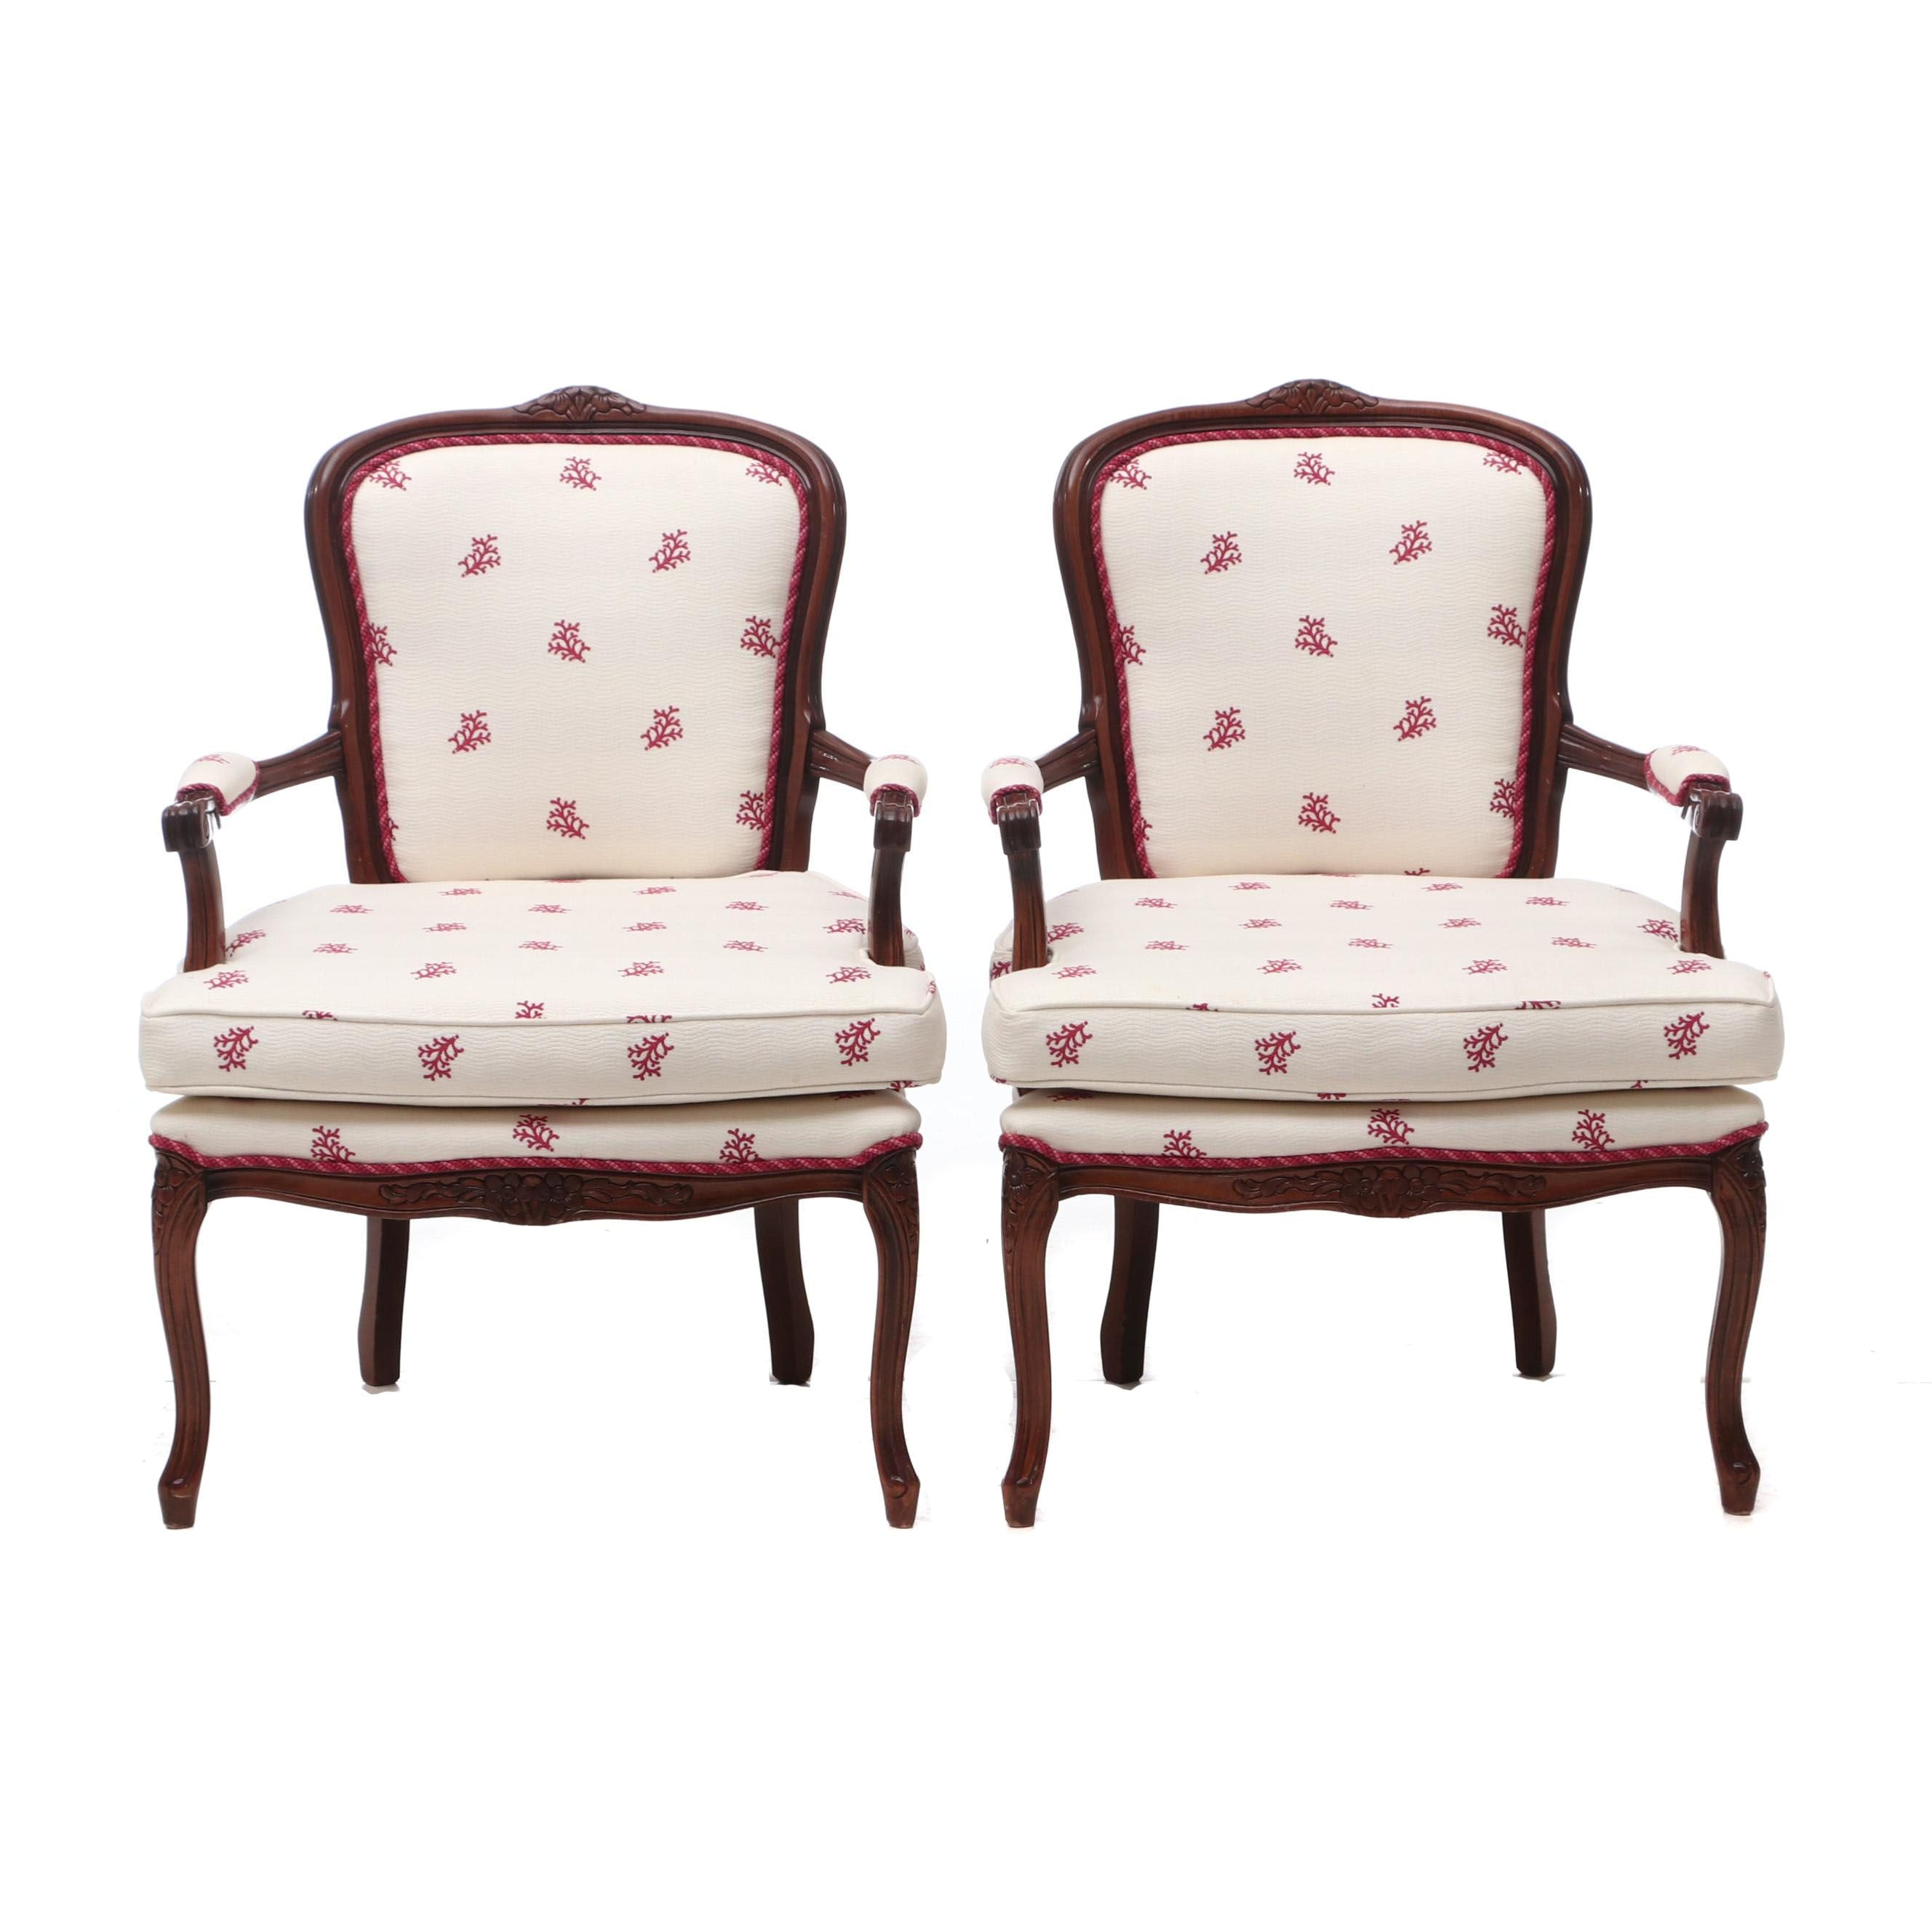 Louis XV Style Upholstered Arm Chairs in Walnut